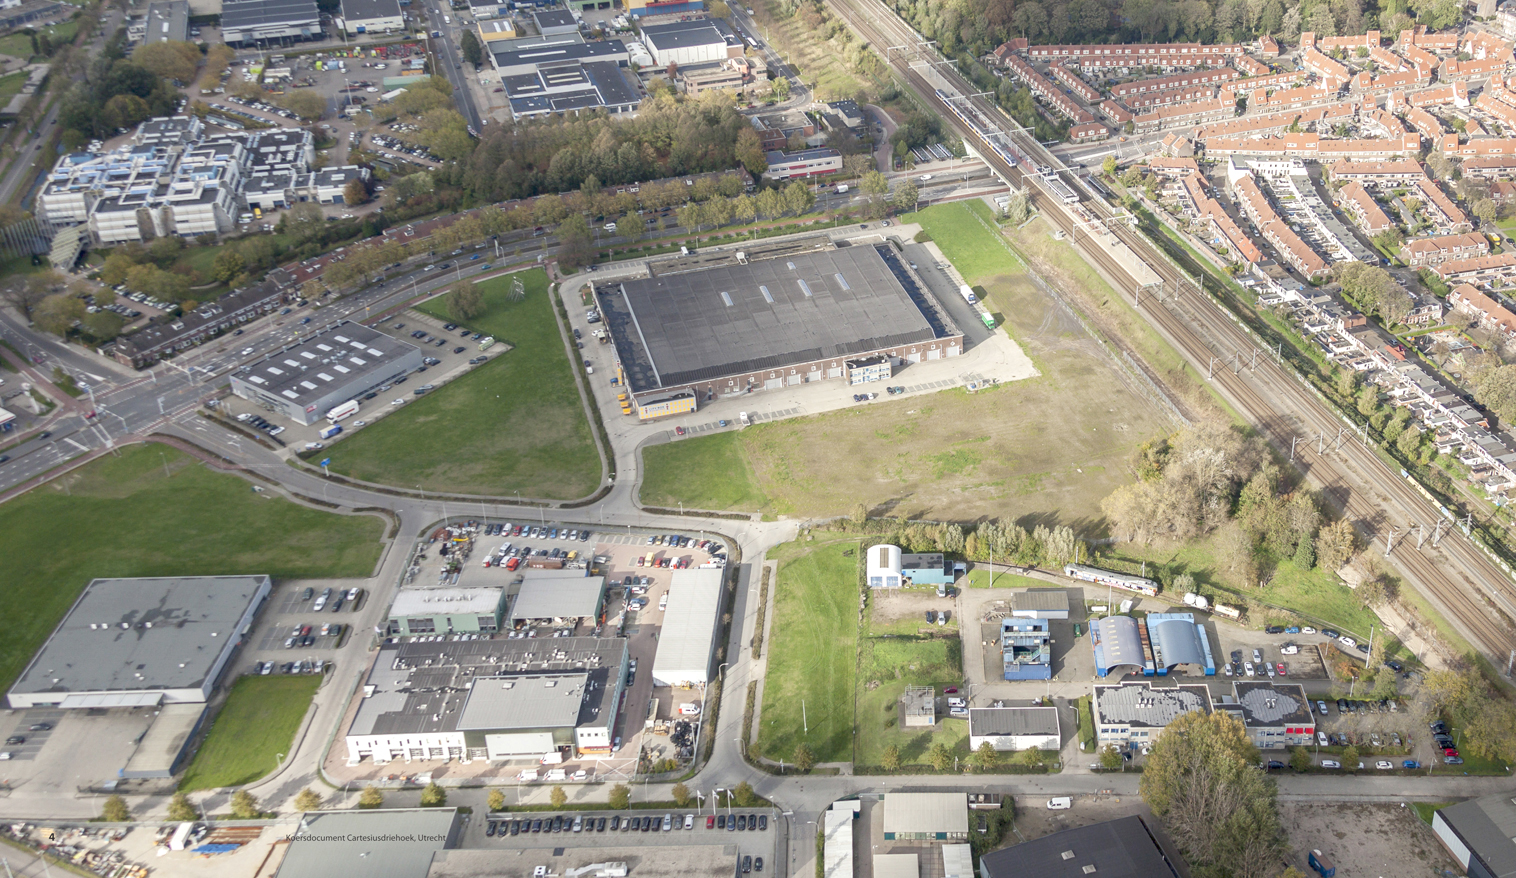 01 OPL Architecten_Cartesius Utrecht-1516×878-72dpi